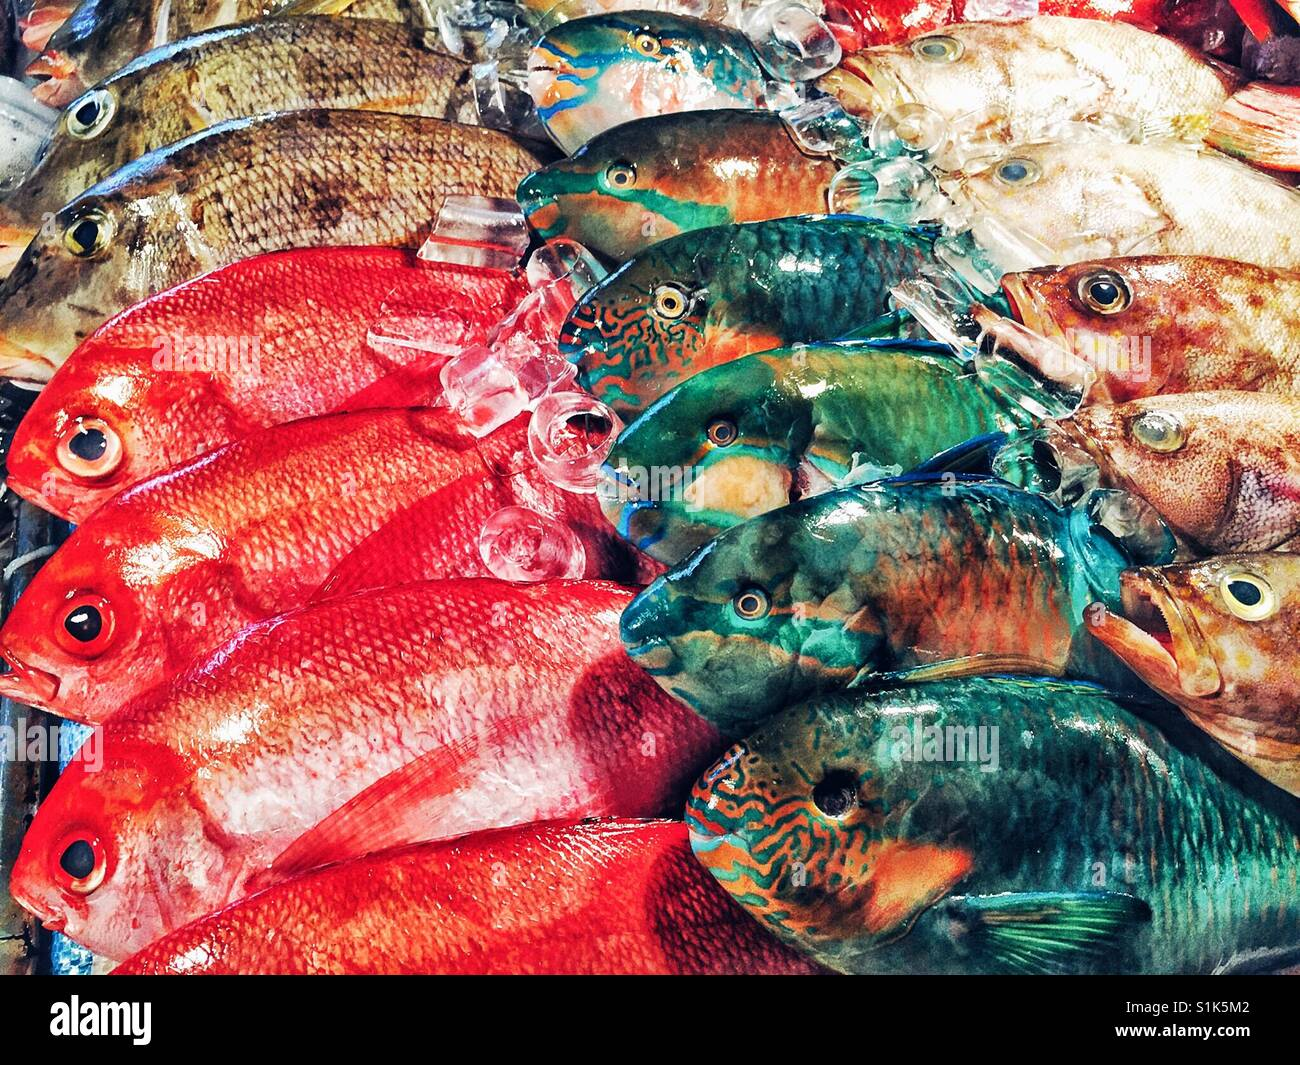 Brightly Colored Fish Stock Photos & Brightly Colored Fish Stock ...